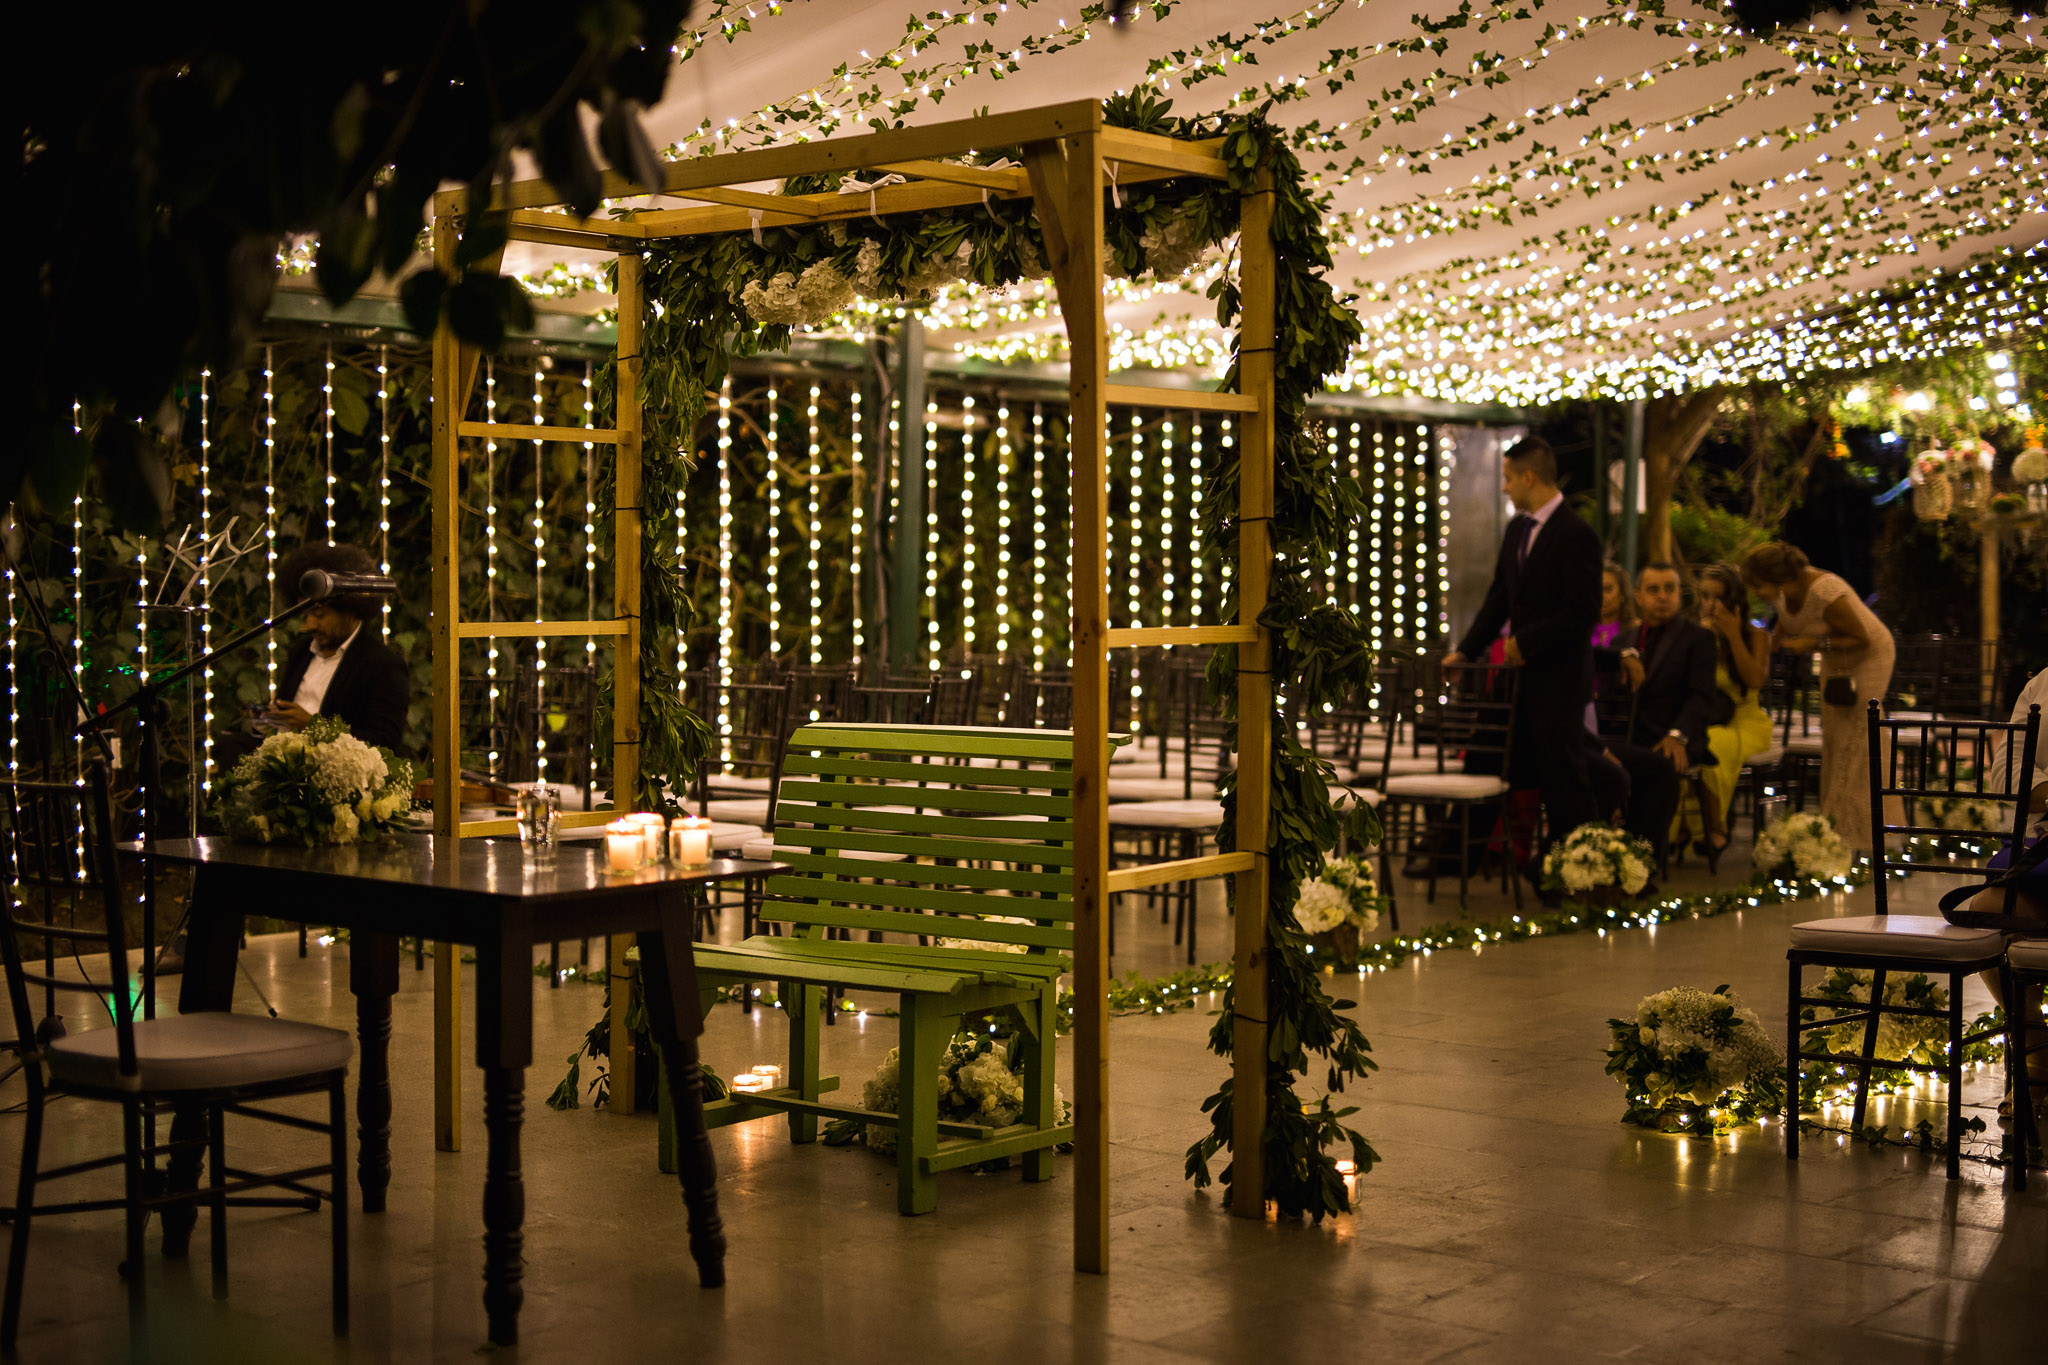 wedding-travellers-destination-wedding-photography-colombia-medellin-chuscalito-night-lights-decoration